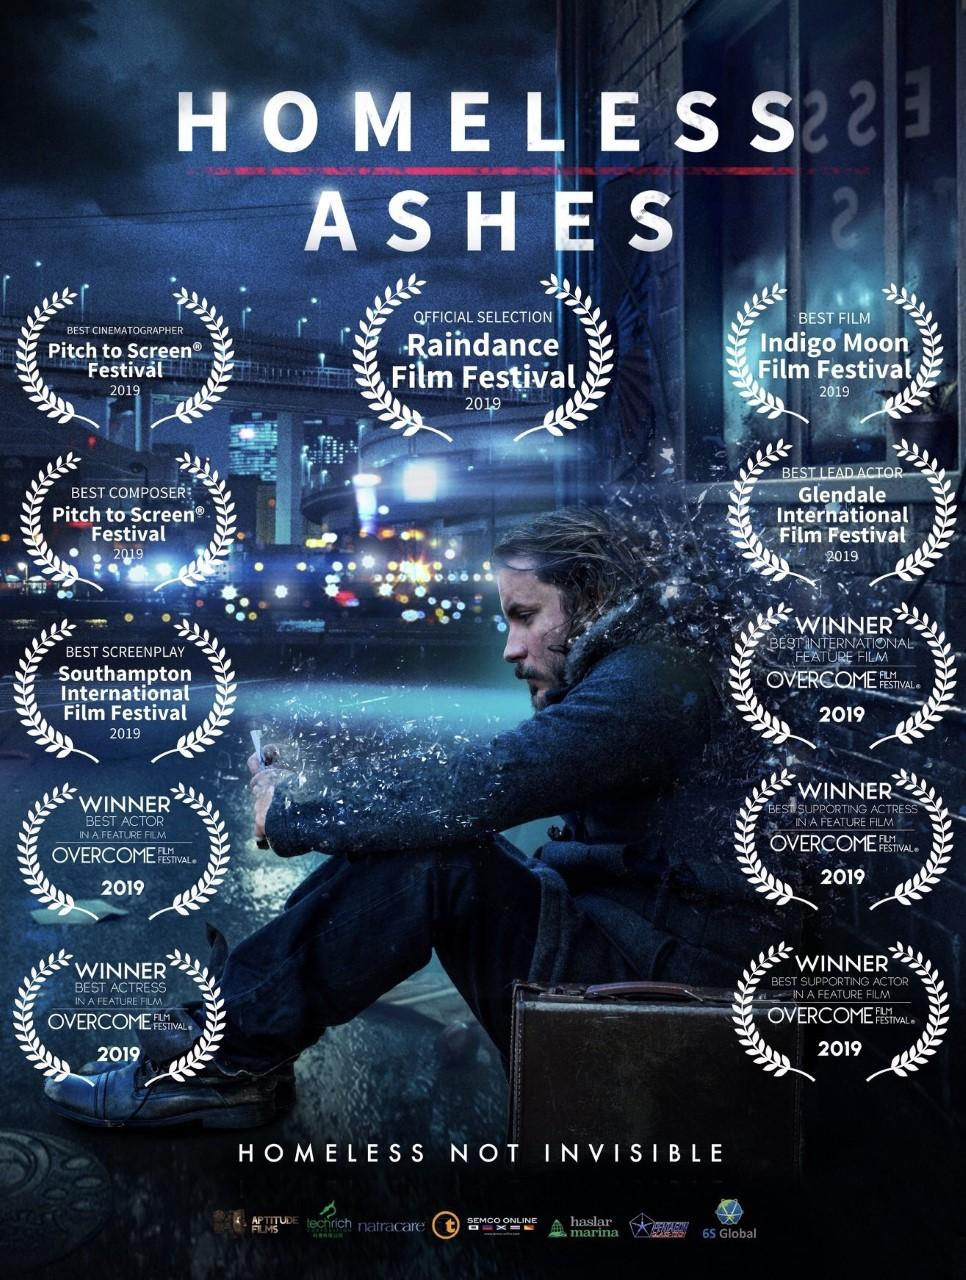 Homeless Ashes Cinema showings